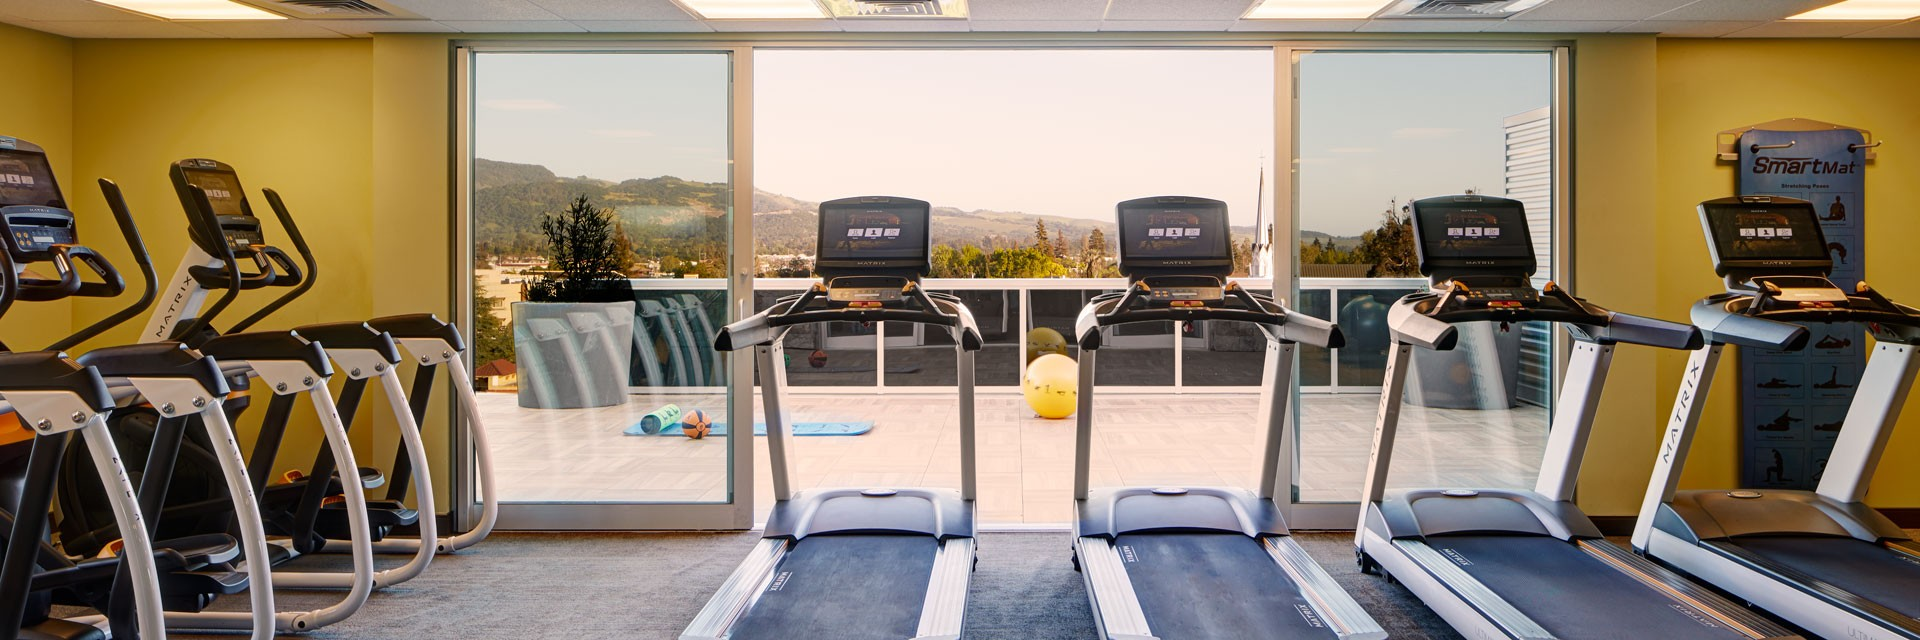 Archer Hotel Napa - Fitness studio cardio equipment